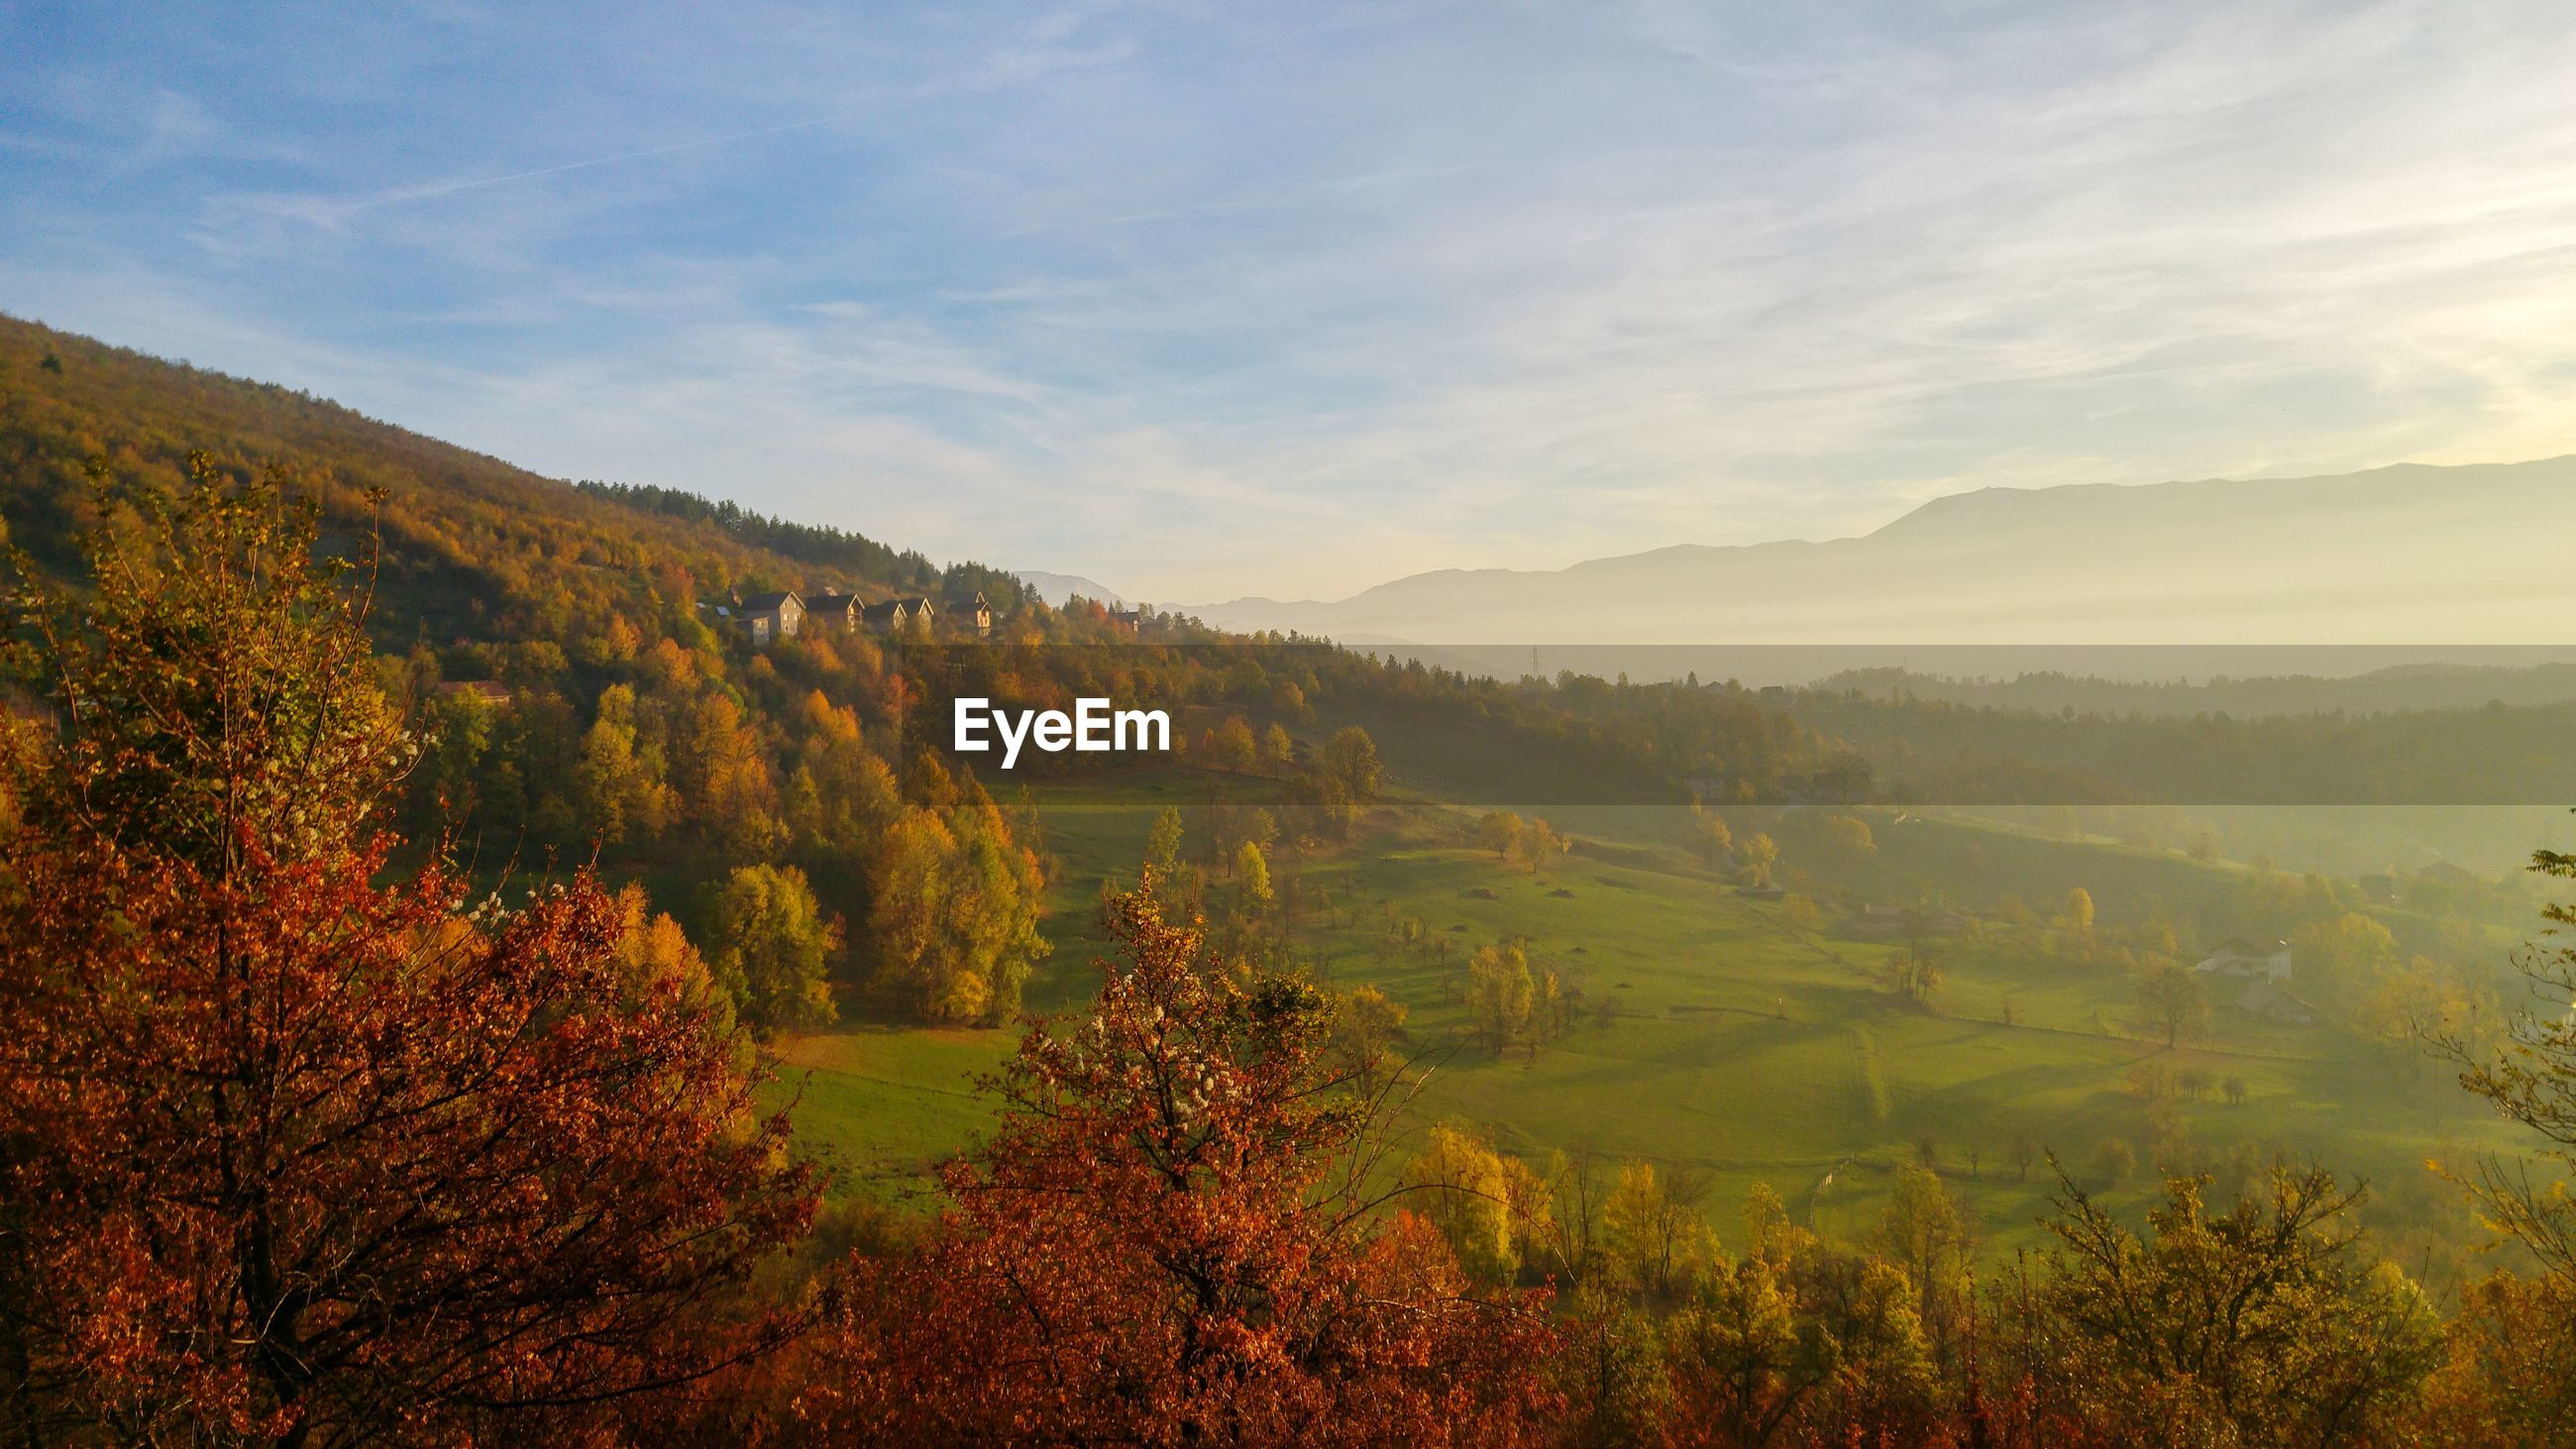 SCENIC VIEW OF LANDSCAPE DURING AUTUMN AGAINST SKY